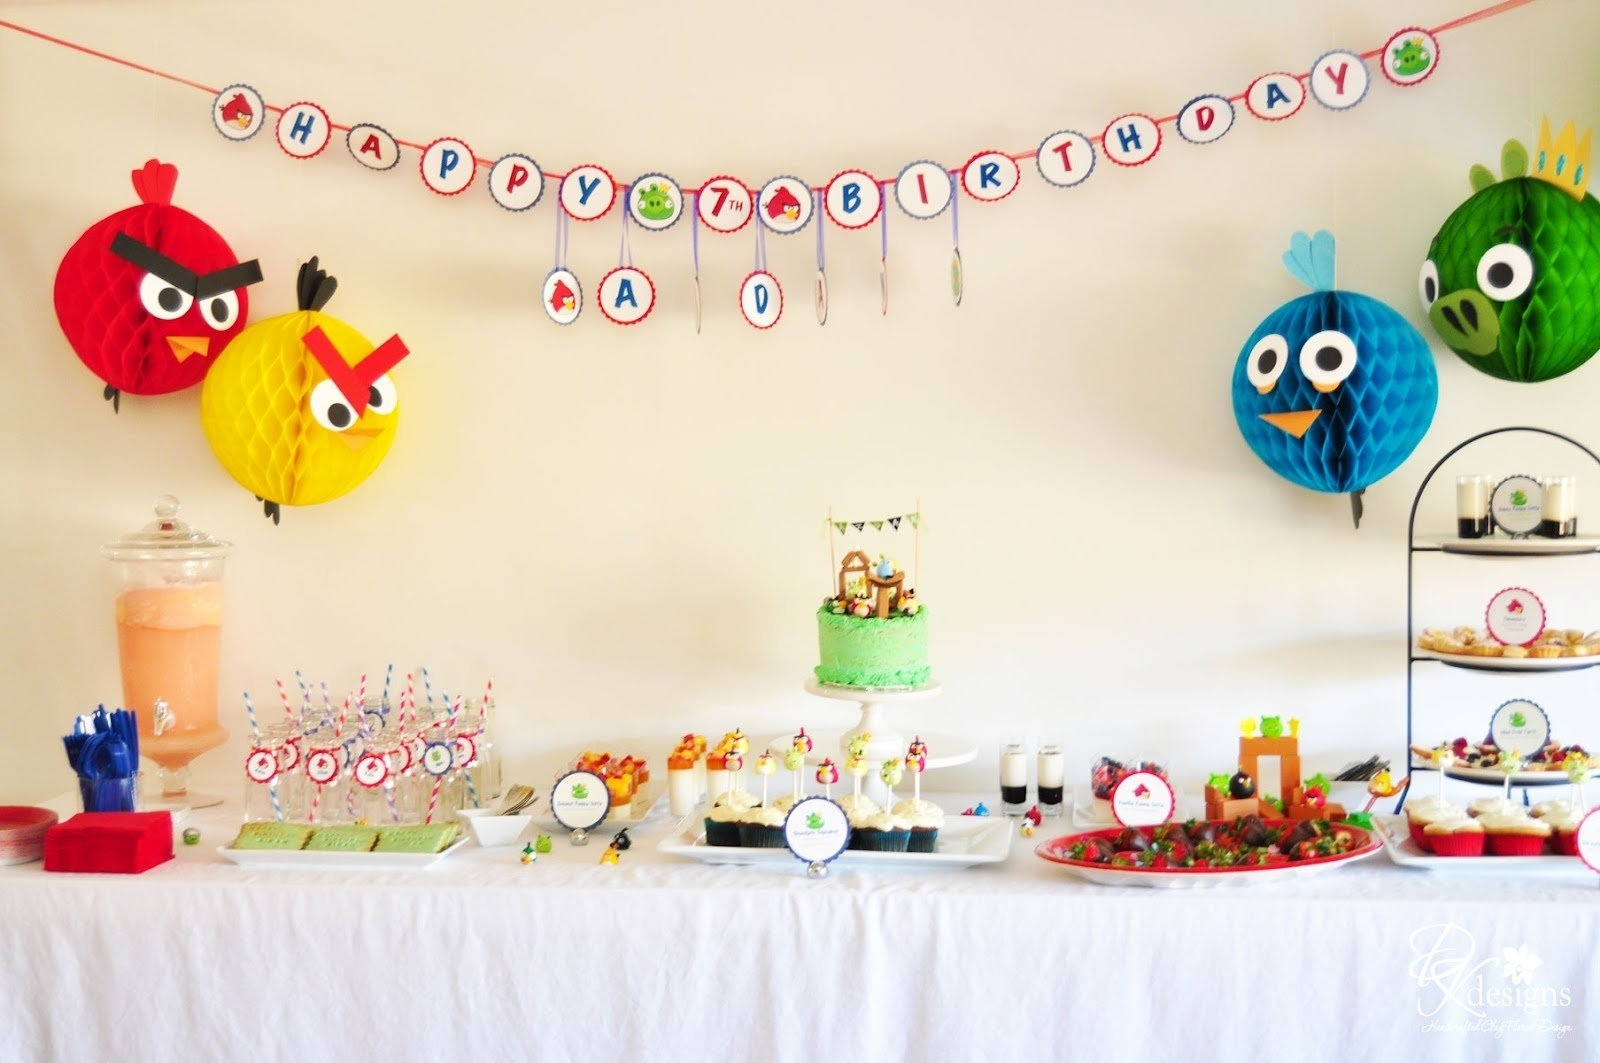 10 Fabulous Angry Birds Birthday Party Ideas angry birds theme party planner delhi gurgaon ghaziabad 2020